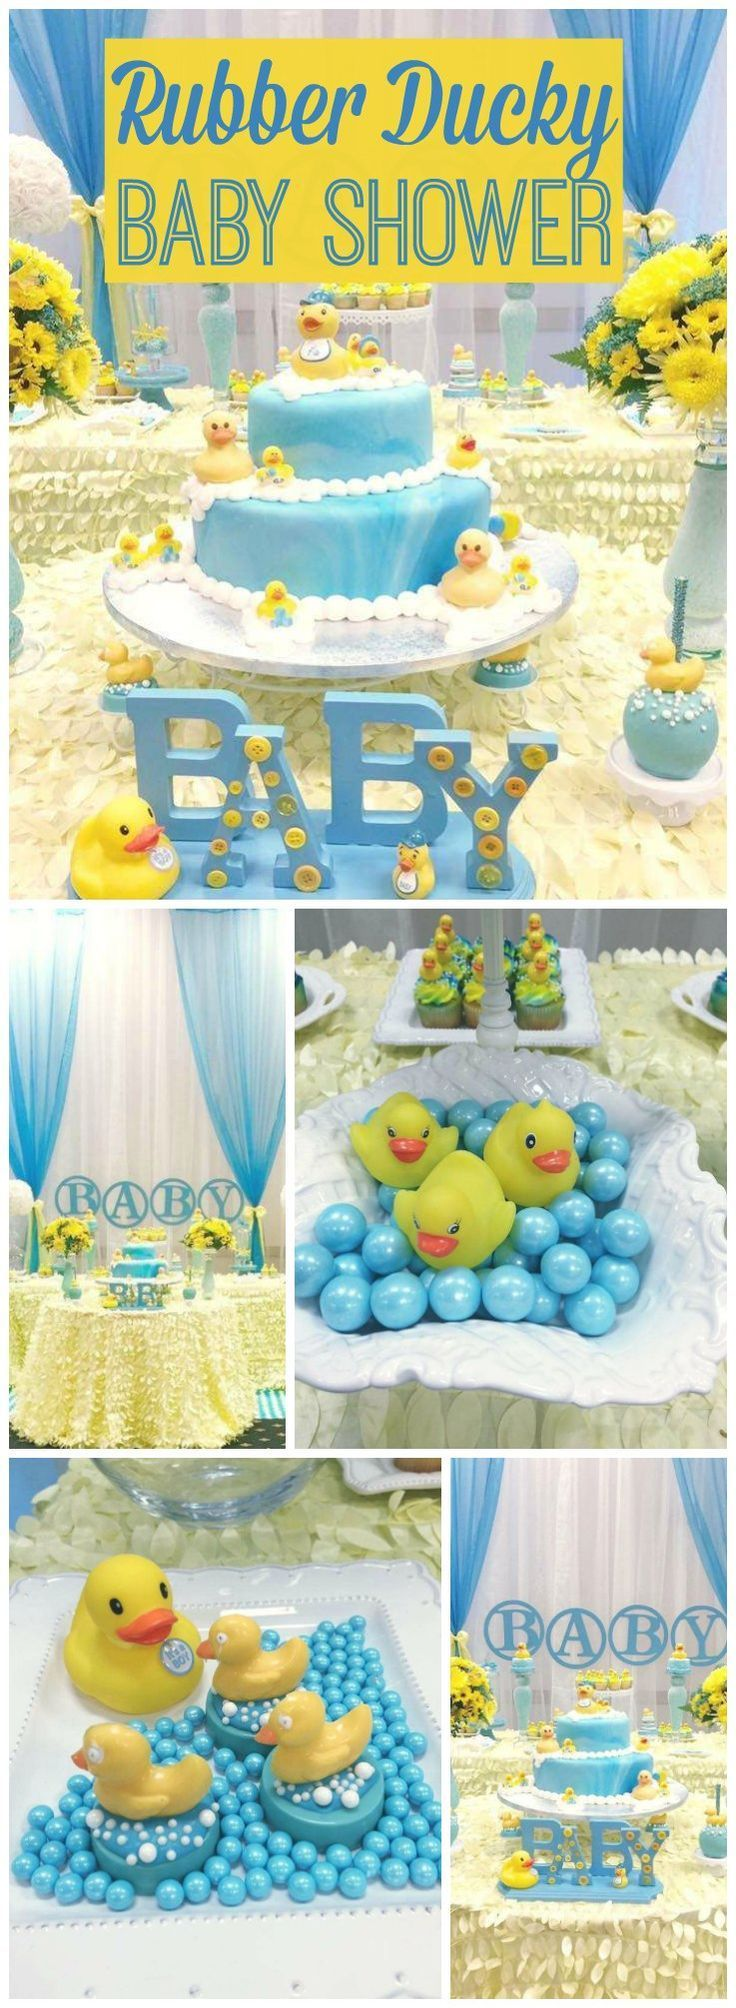 best baby showers images on pinterest conch fritters cakes